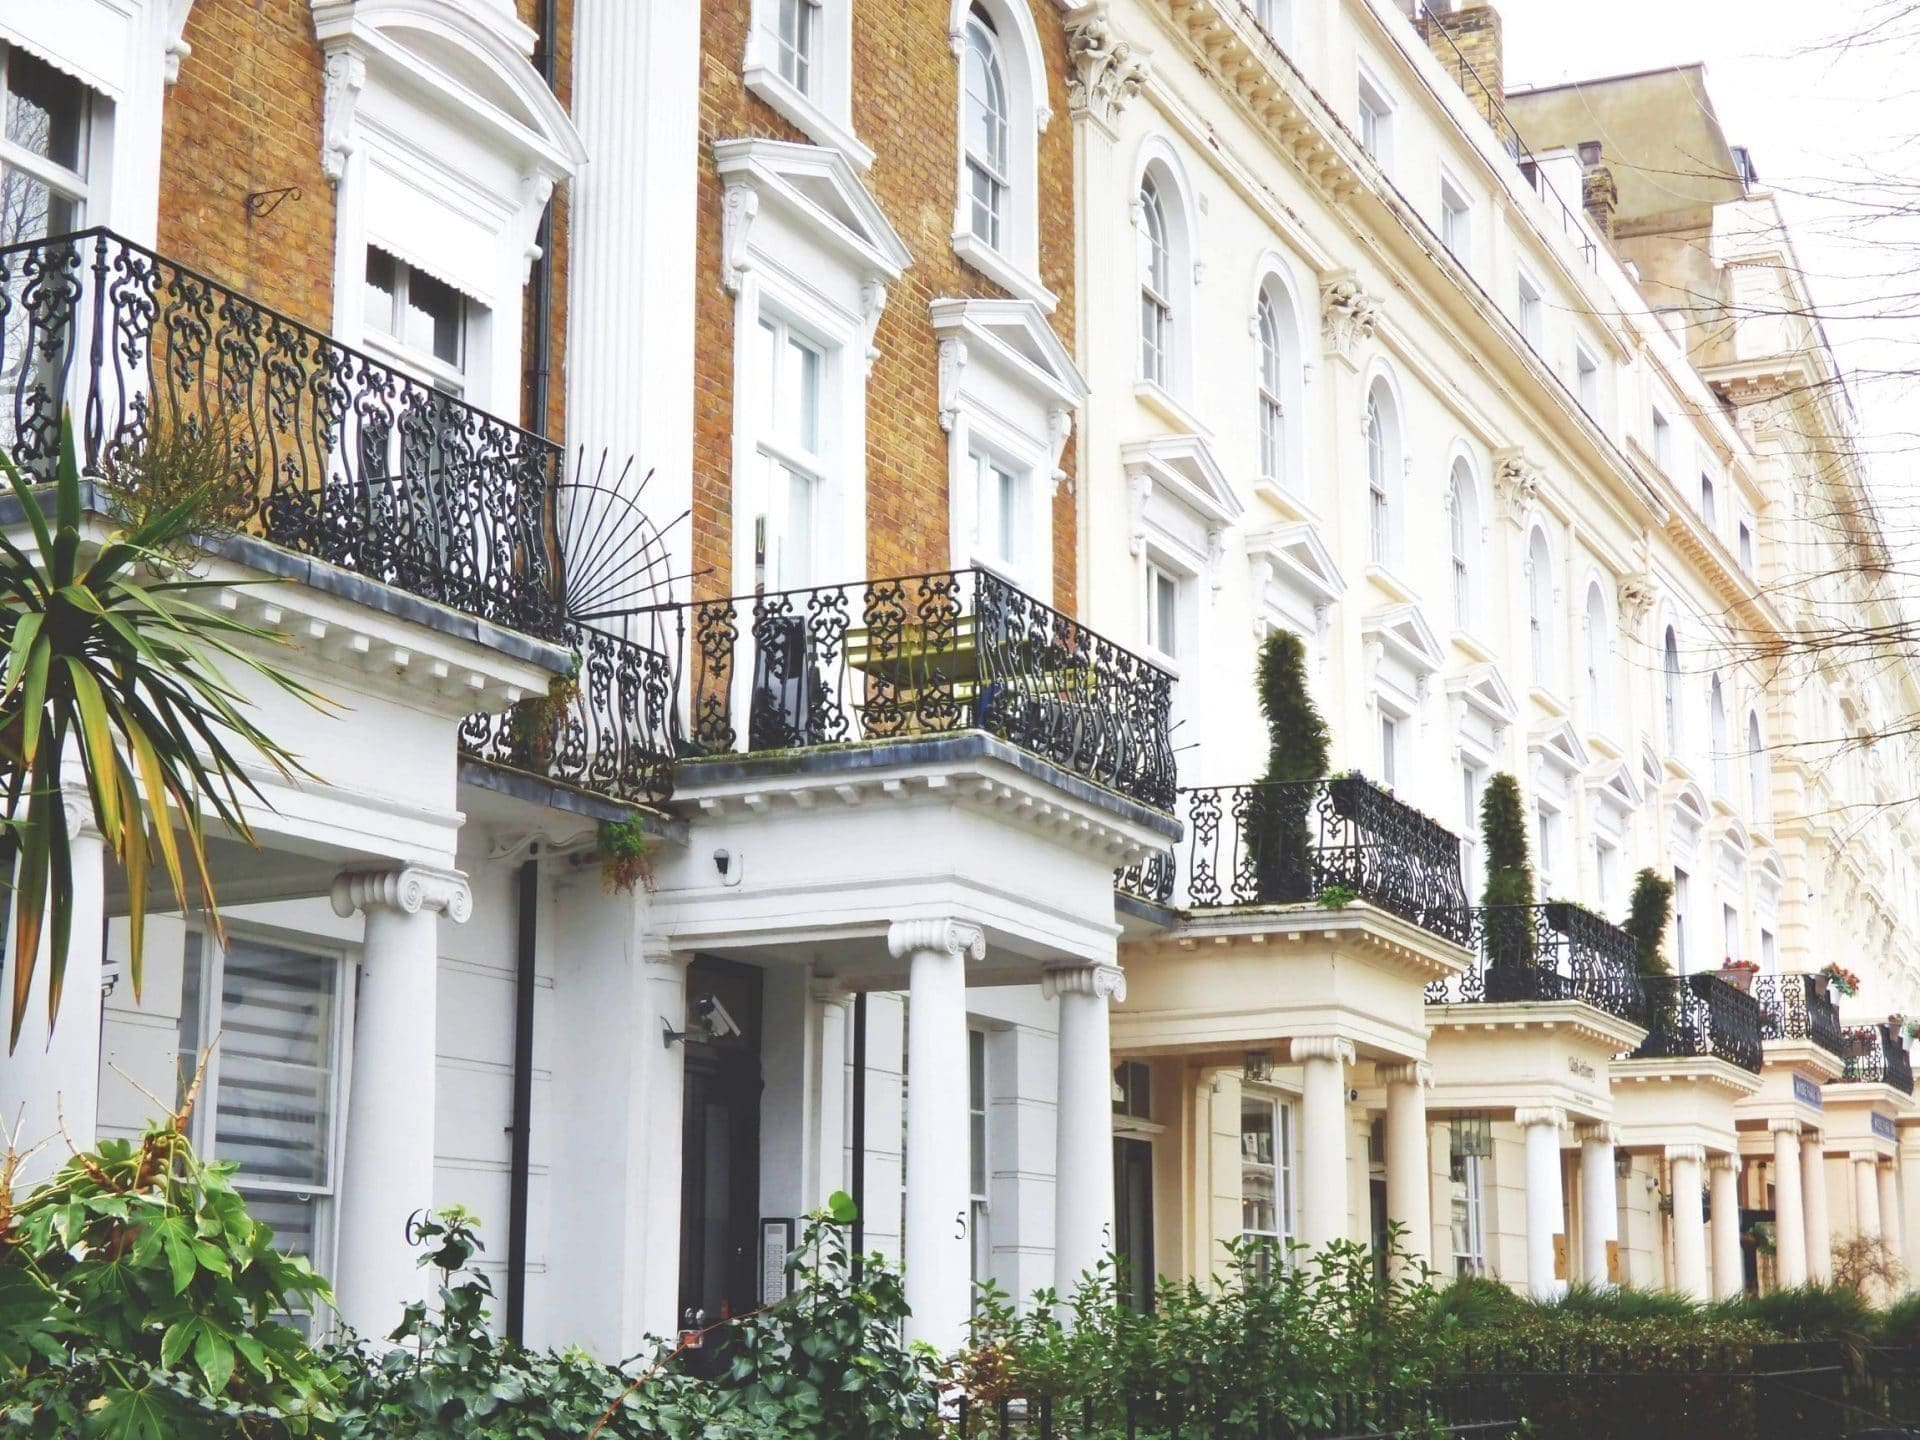 Renting an apartment in the UK